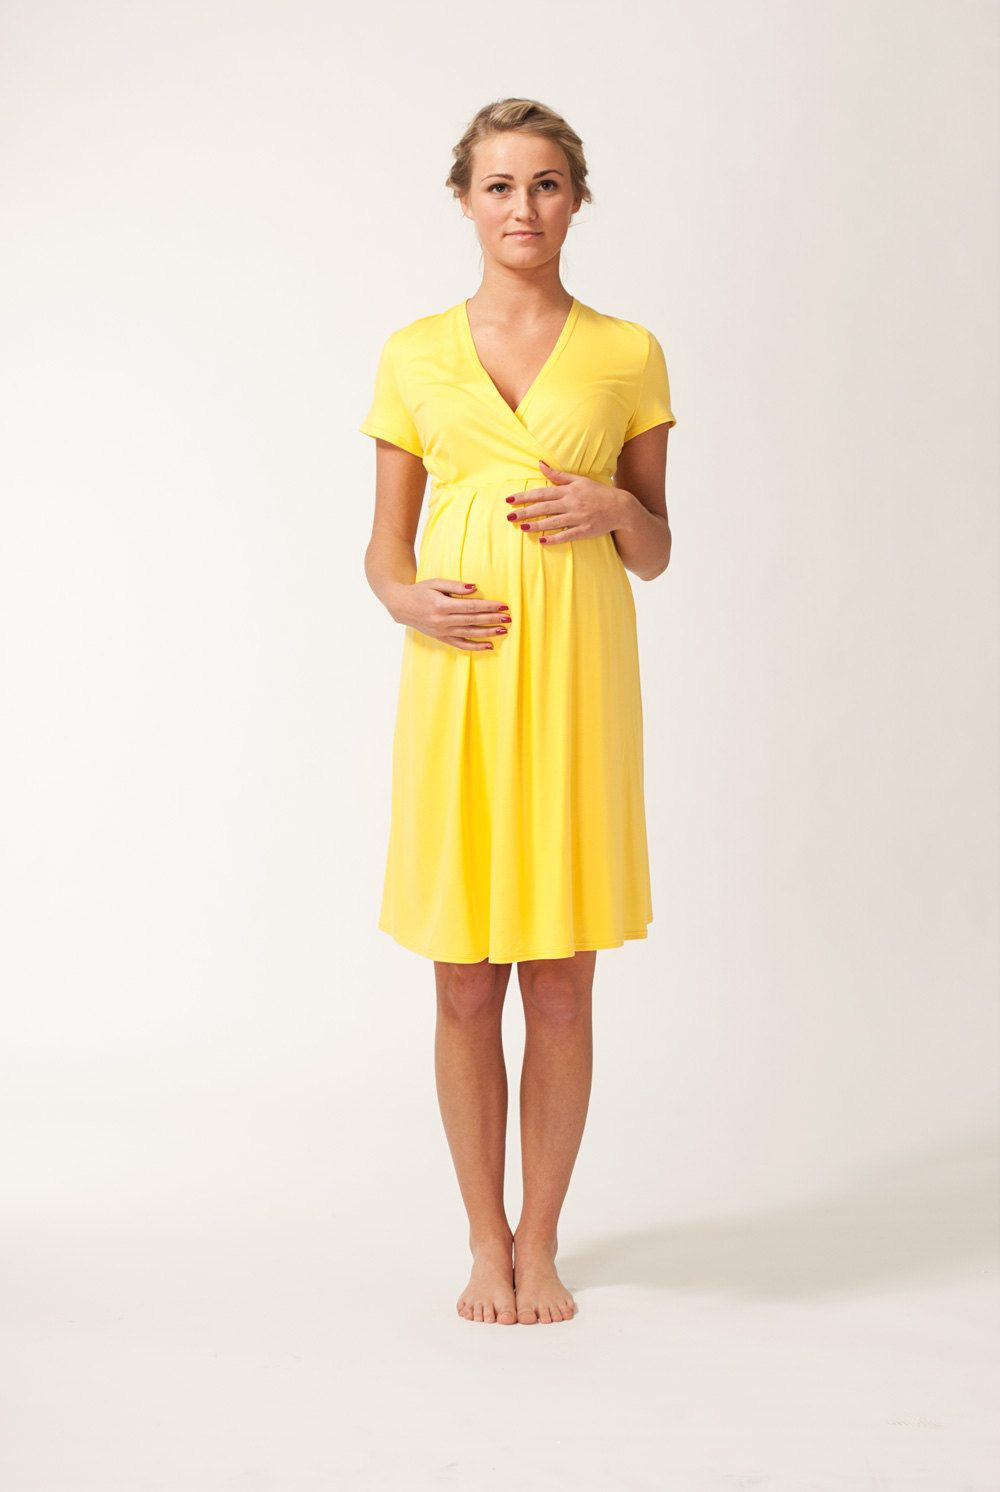 b644763a35cd2 Short sleeve yellow sunflower maternity dress, via Etsy. | Pregnant ...